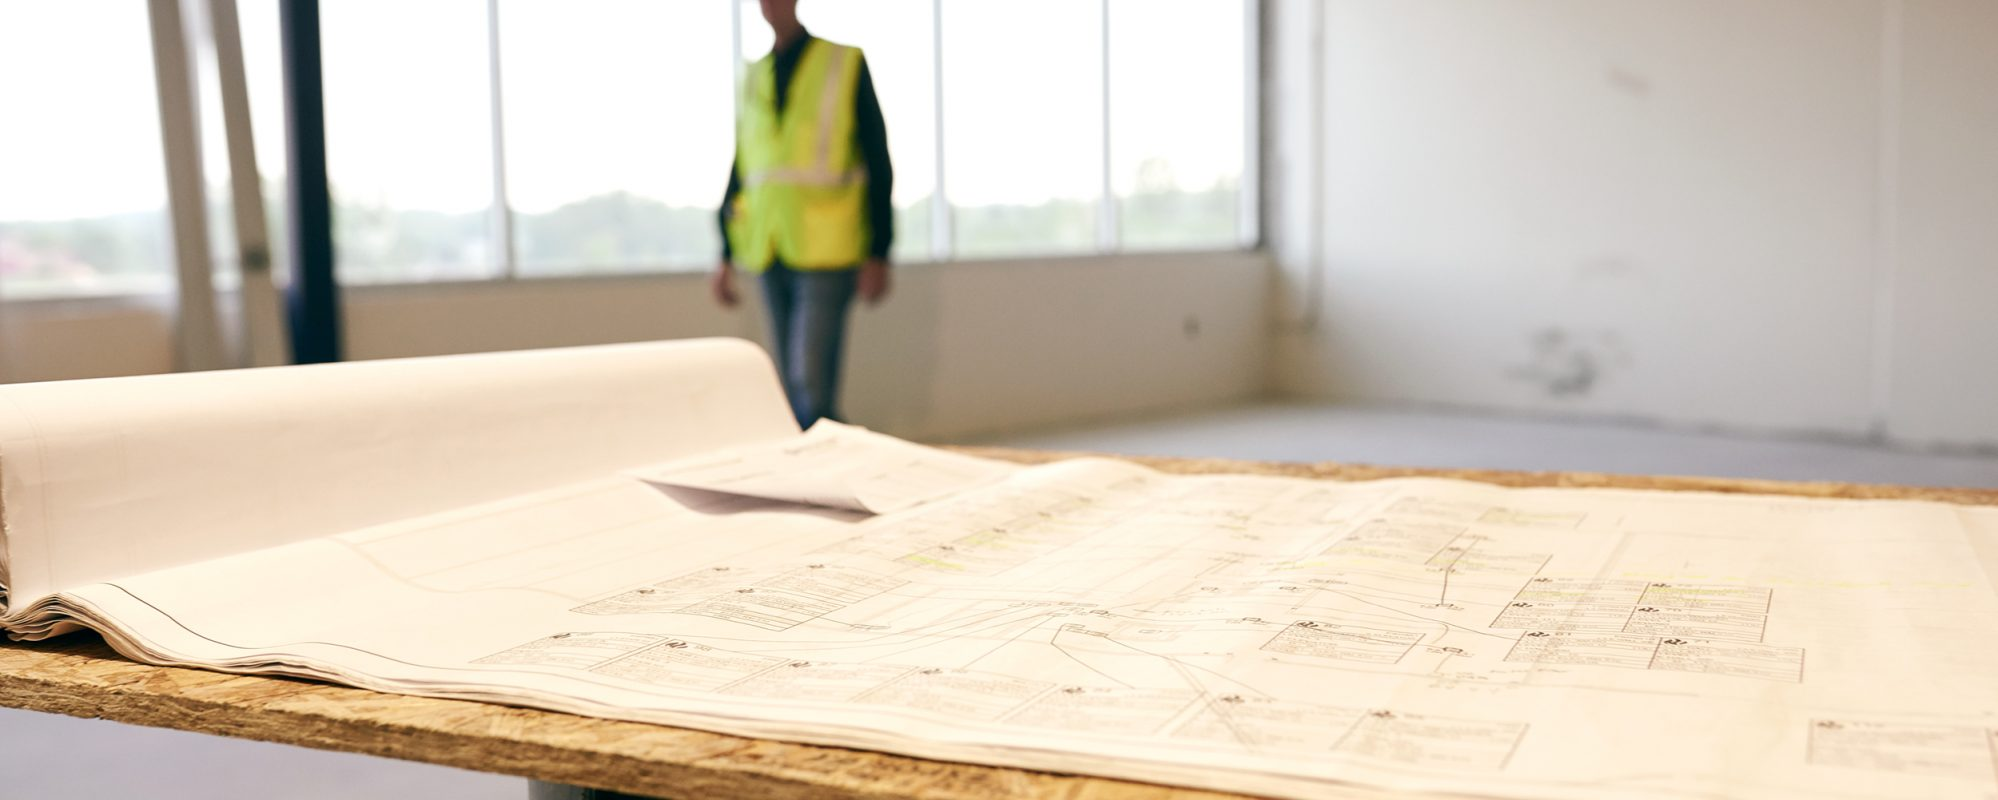 Image of construction plans and construction worker in background on Beene Garter's state and local tax page